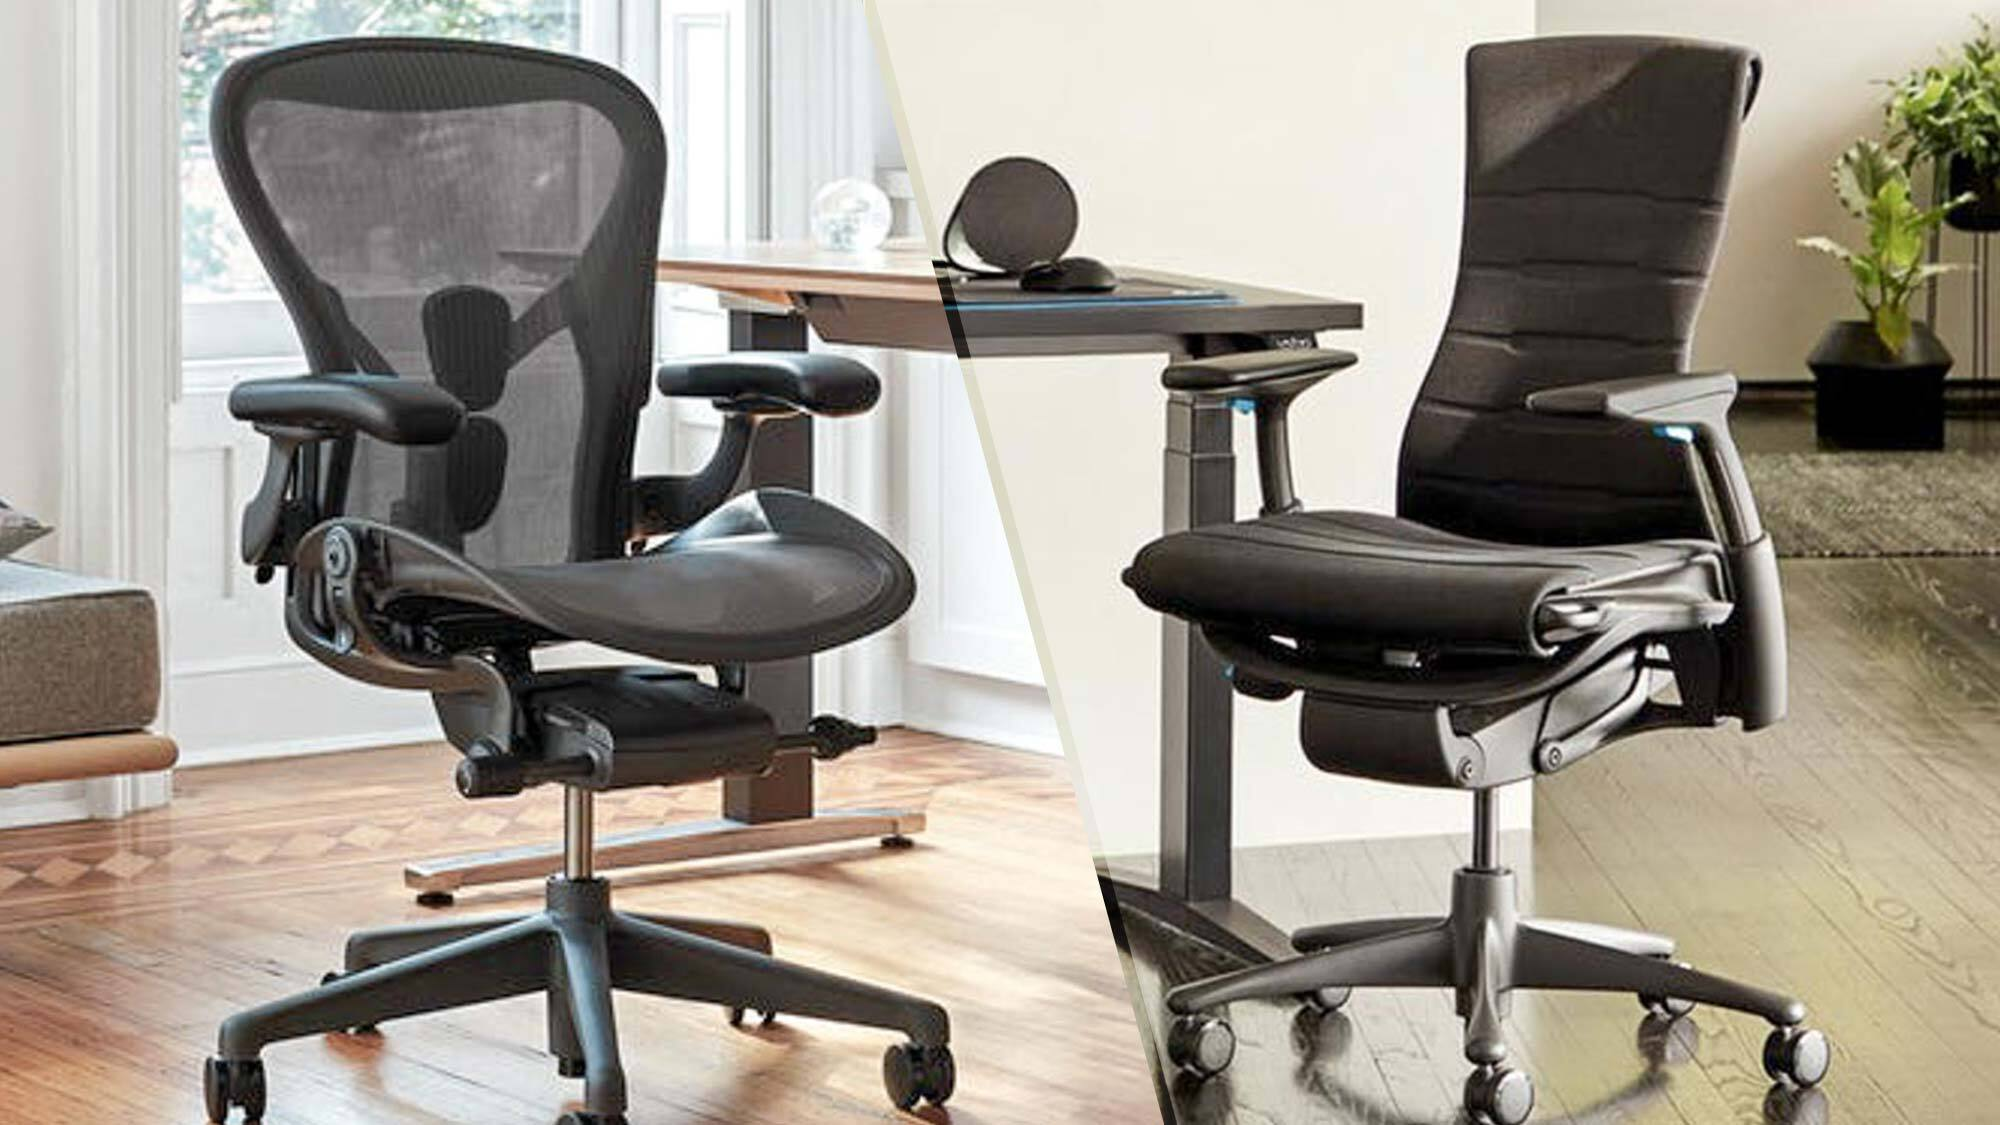 Tips to buy Herman Miller Office Chairs - Get the right office chairs